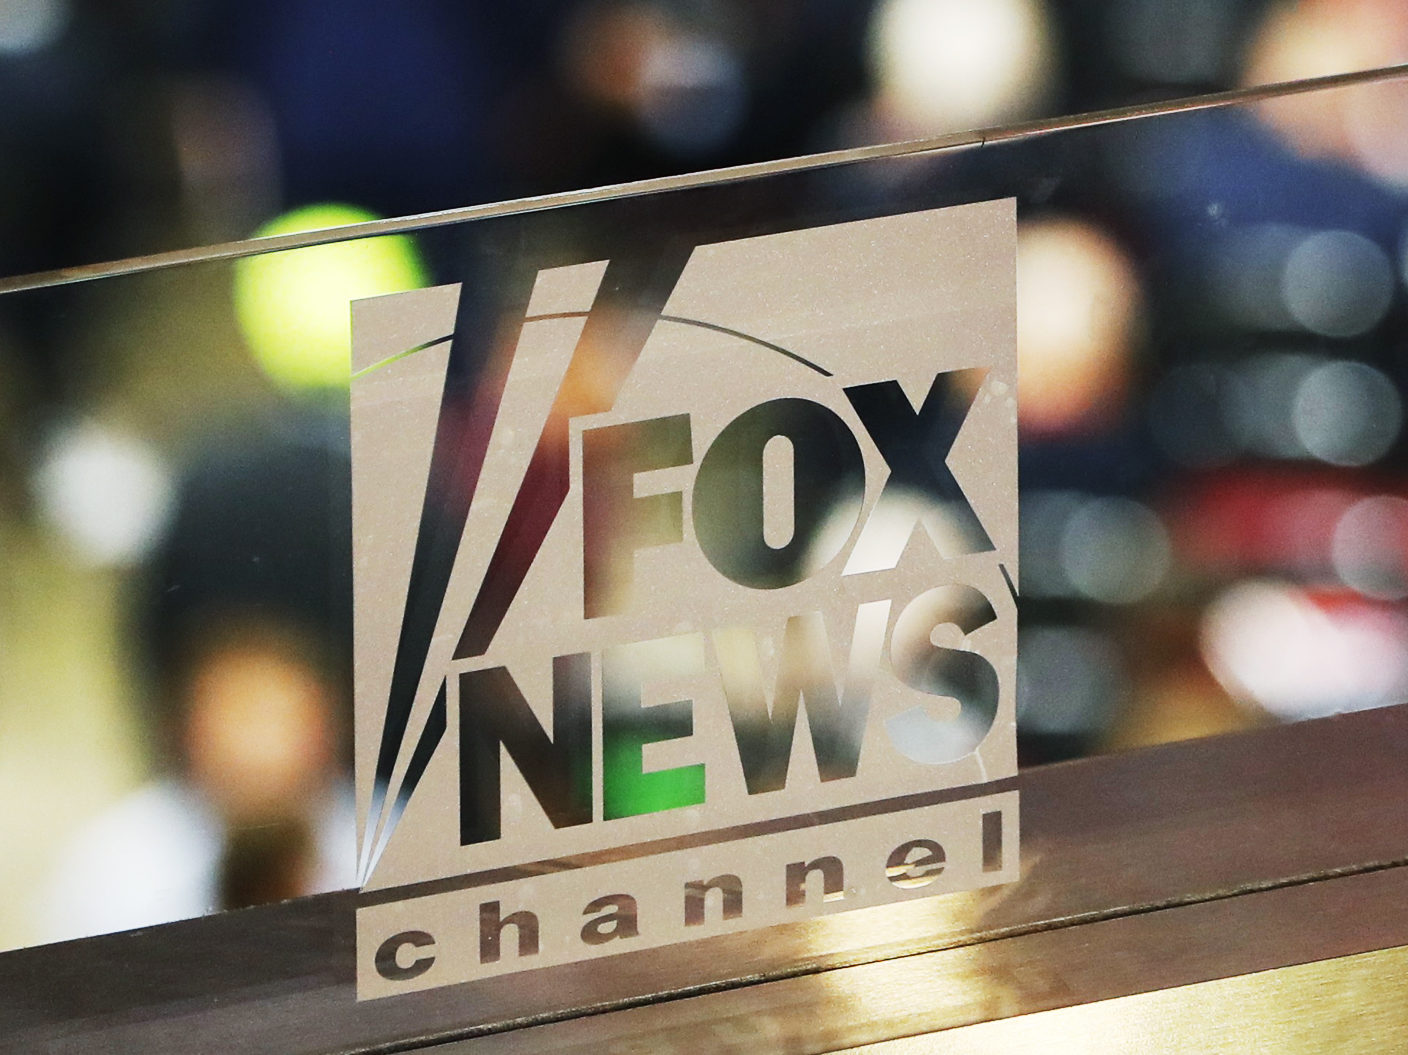 World's biggest news websites include Fox News